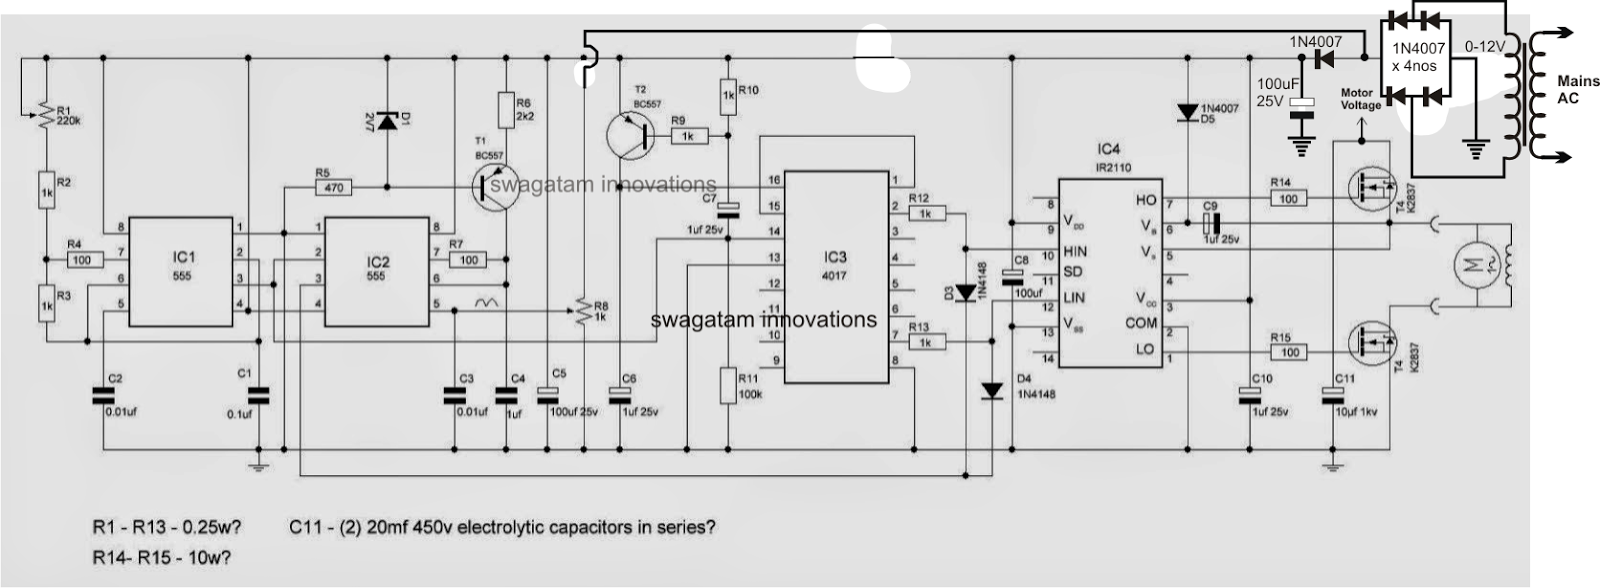 single phase variable frequency drive vfd circuit electronic r1 is for frequency adjustment and r8 for voltage adjustment both of these controls could be used for optimizing the v hz ratio for a particular motor